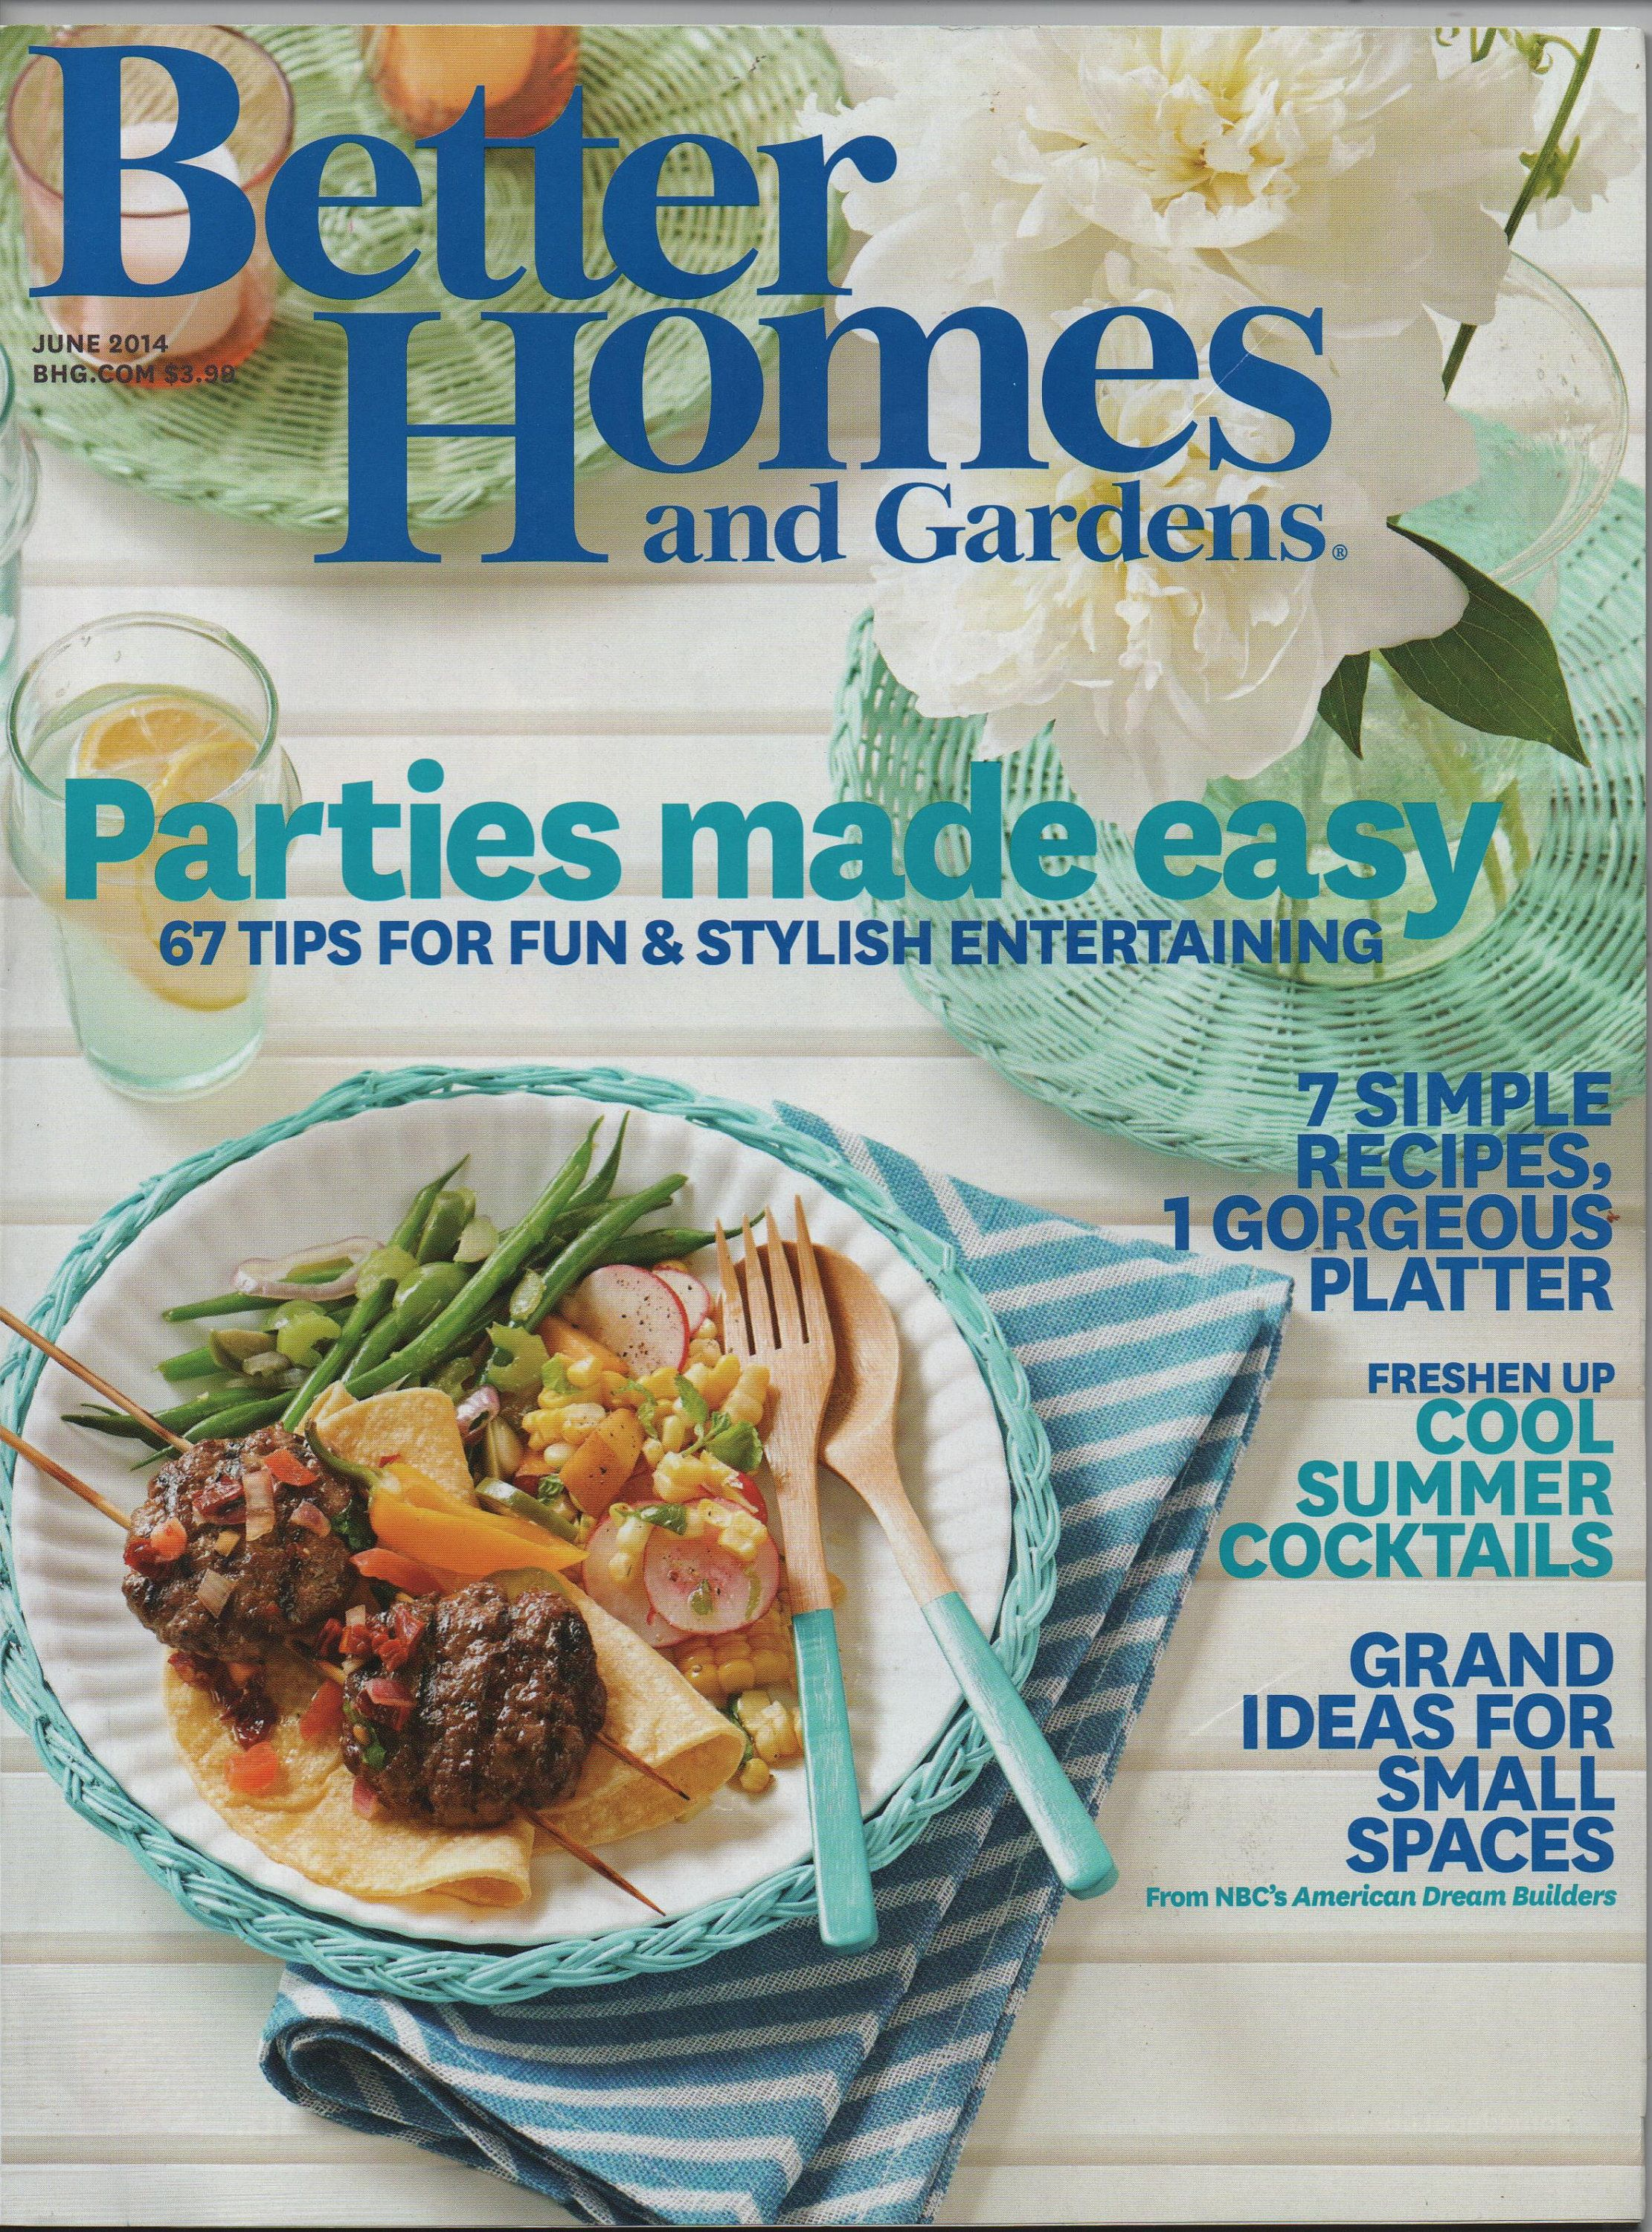 ee143324302d7924e1a4f97aadfe5fcd - Better Homes And Gardens Summer Recipes